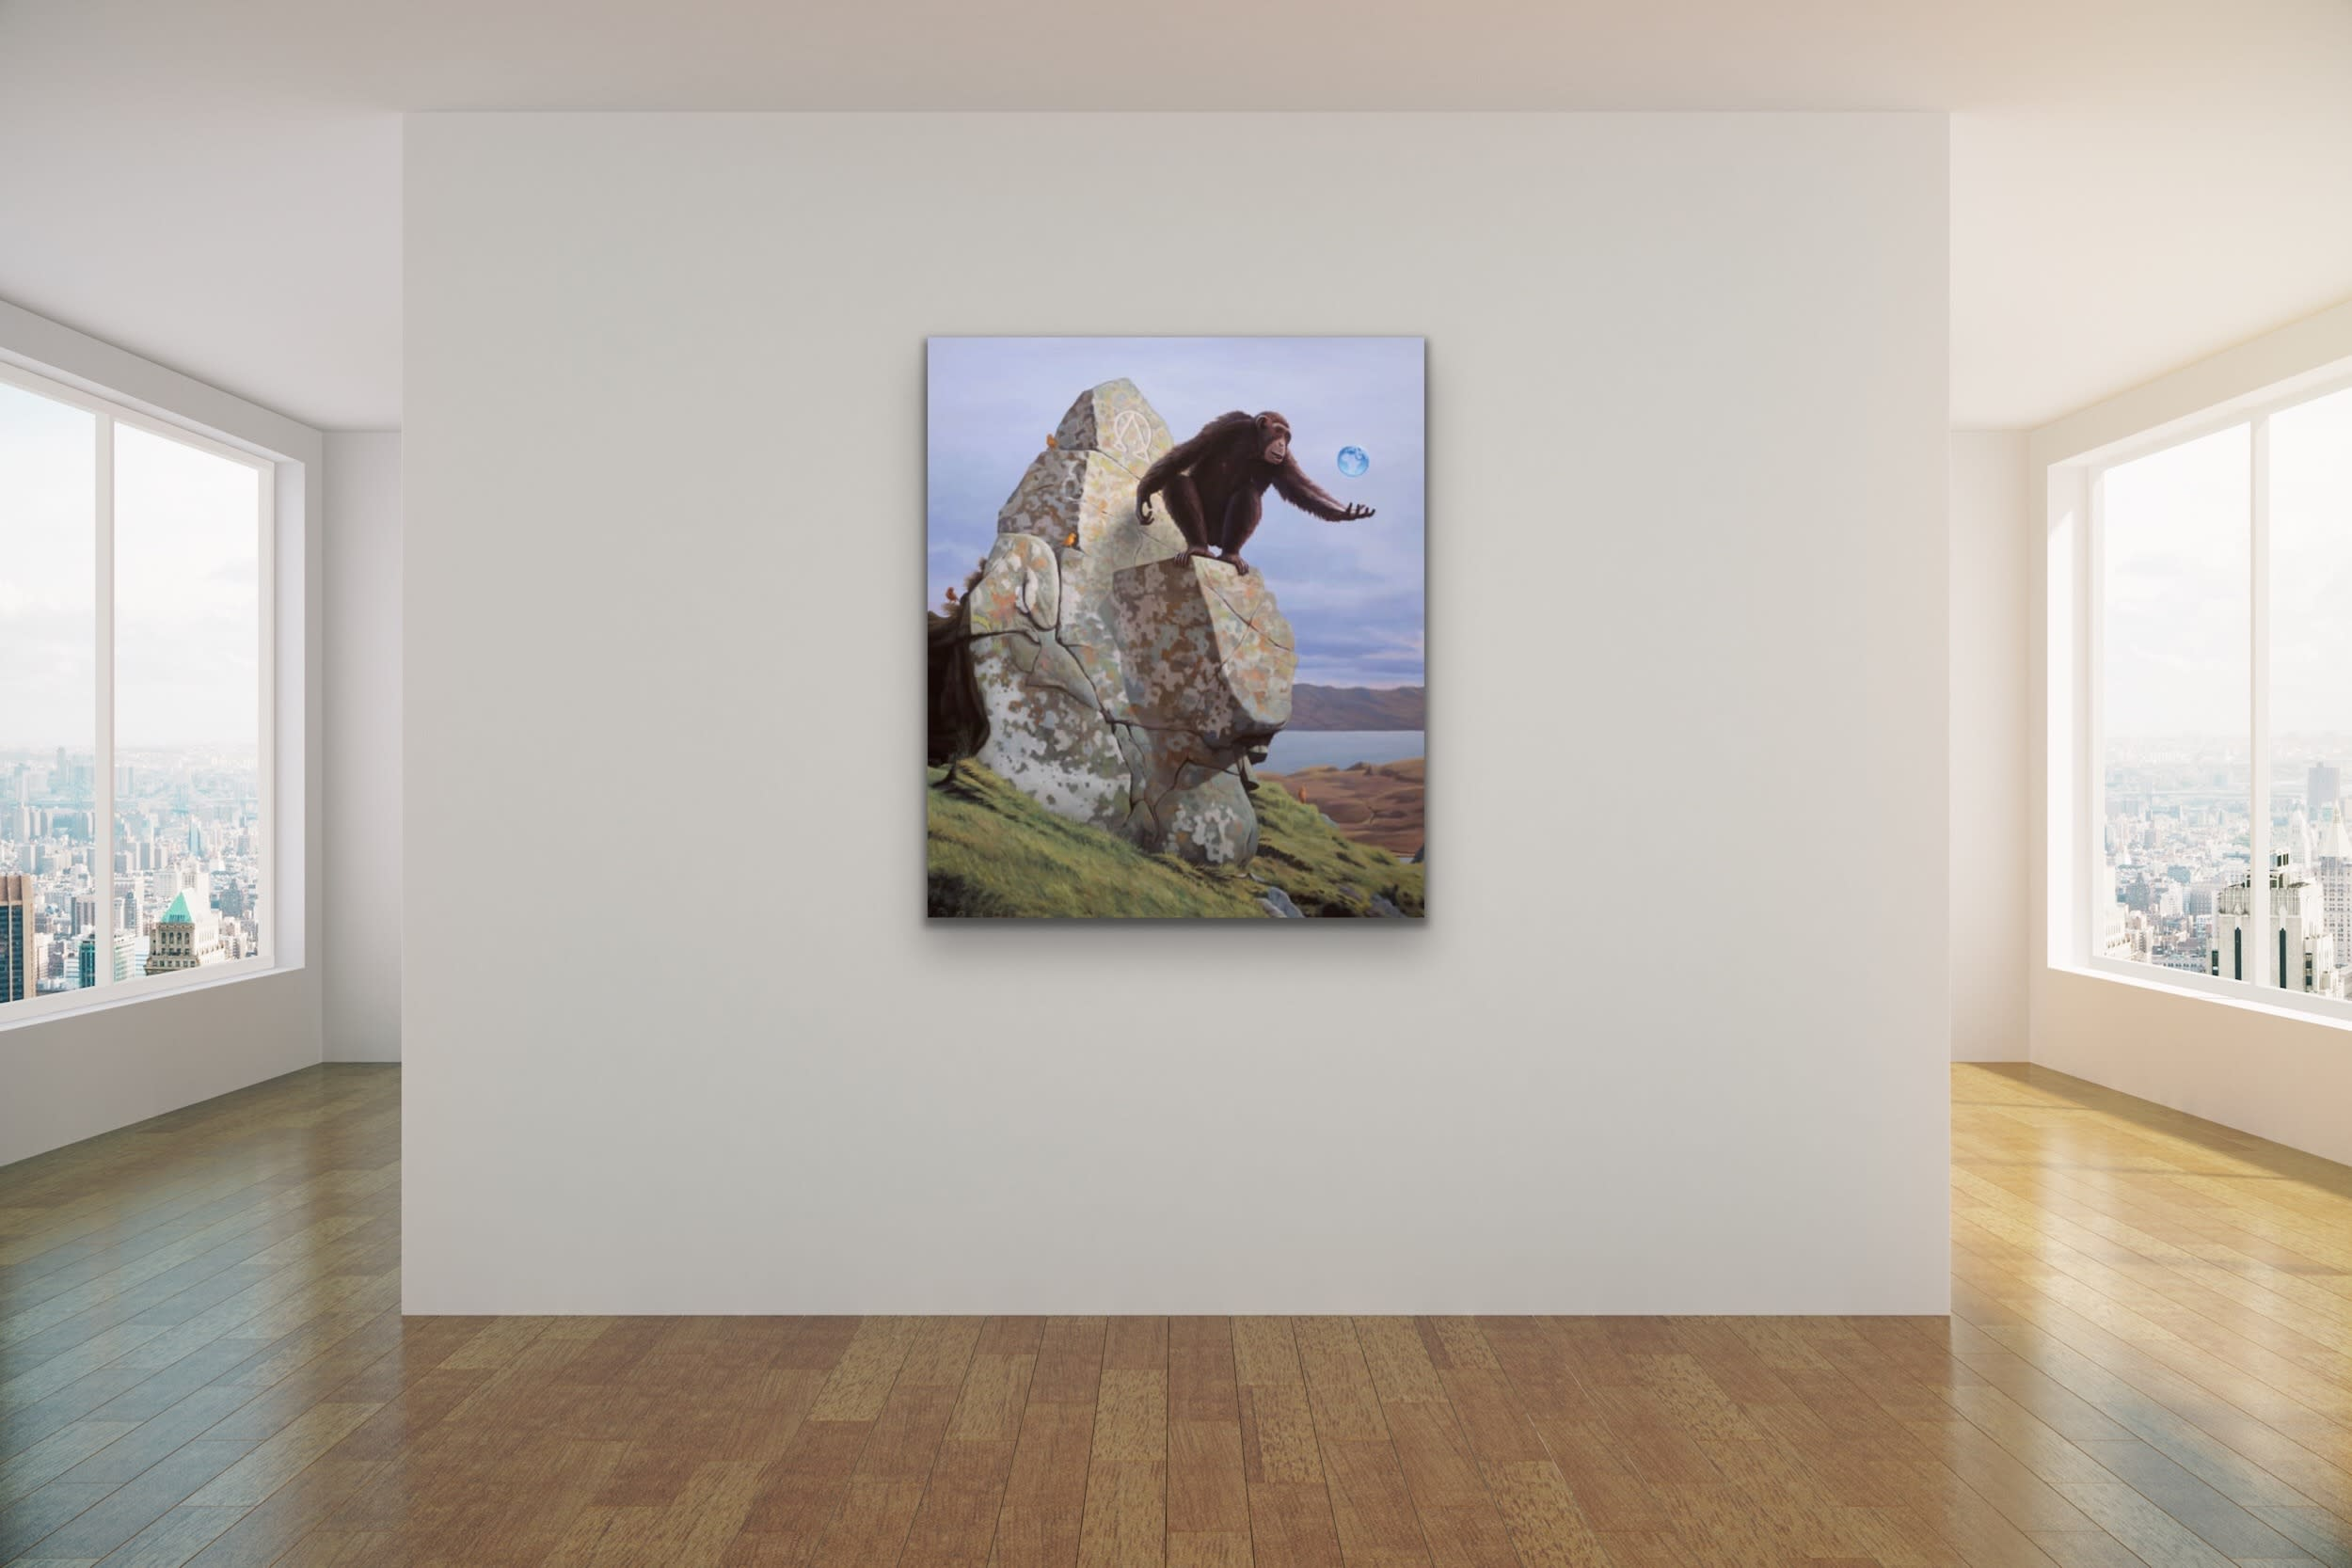 <div class='title'>           Paul Bond Magical Realism Poetry Serene Landscape Animals Nature Surreal Metaphorical Whimsical Fantasy Evo Art Maui Lahaina Front Street Art Gallery 63         </div>